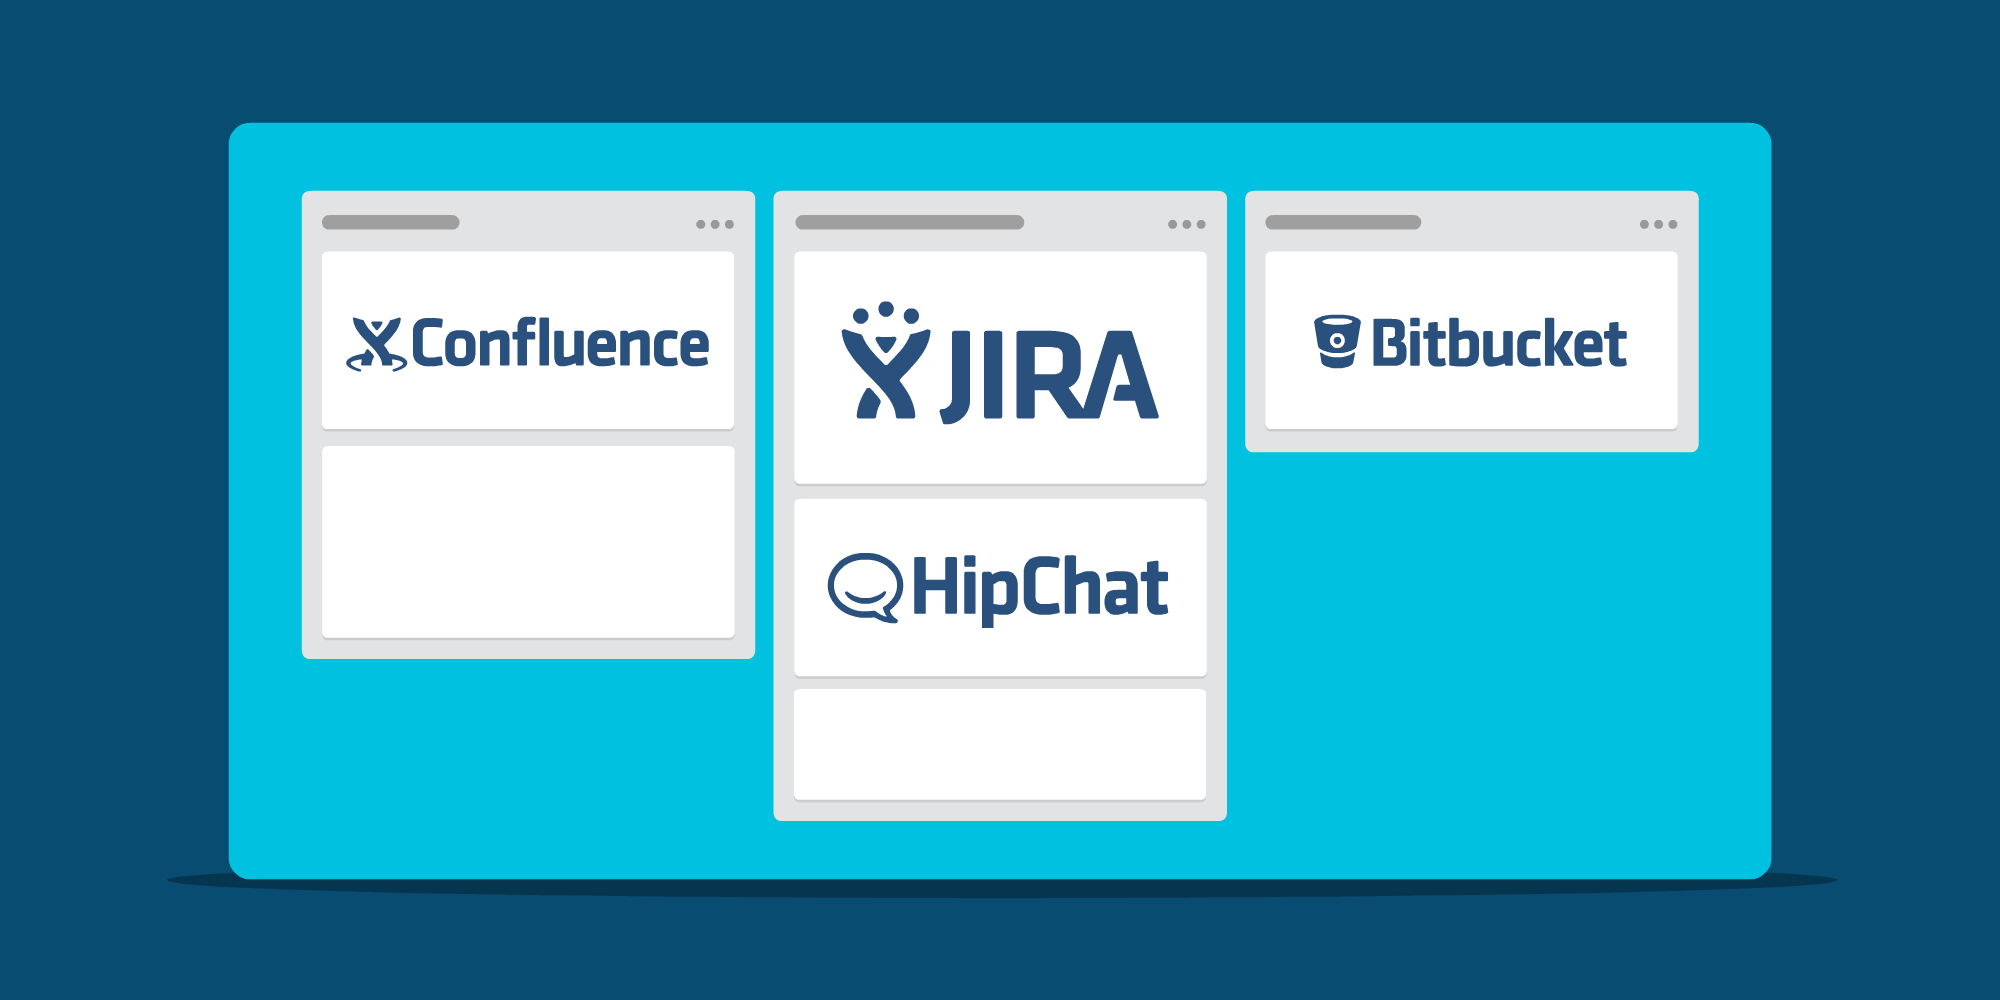 New! Trello Power-Ups For JIRA, Bitbucket, And Confluence Cloud (Plus A Cooler HipChat Integration)